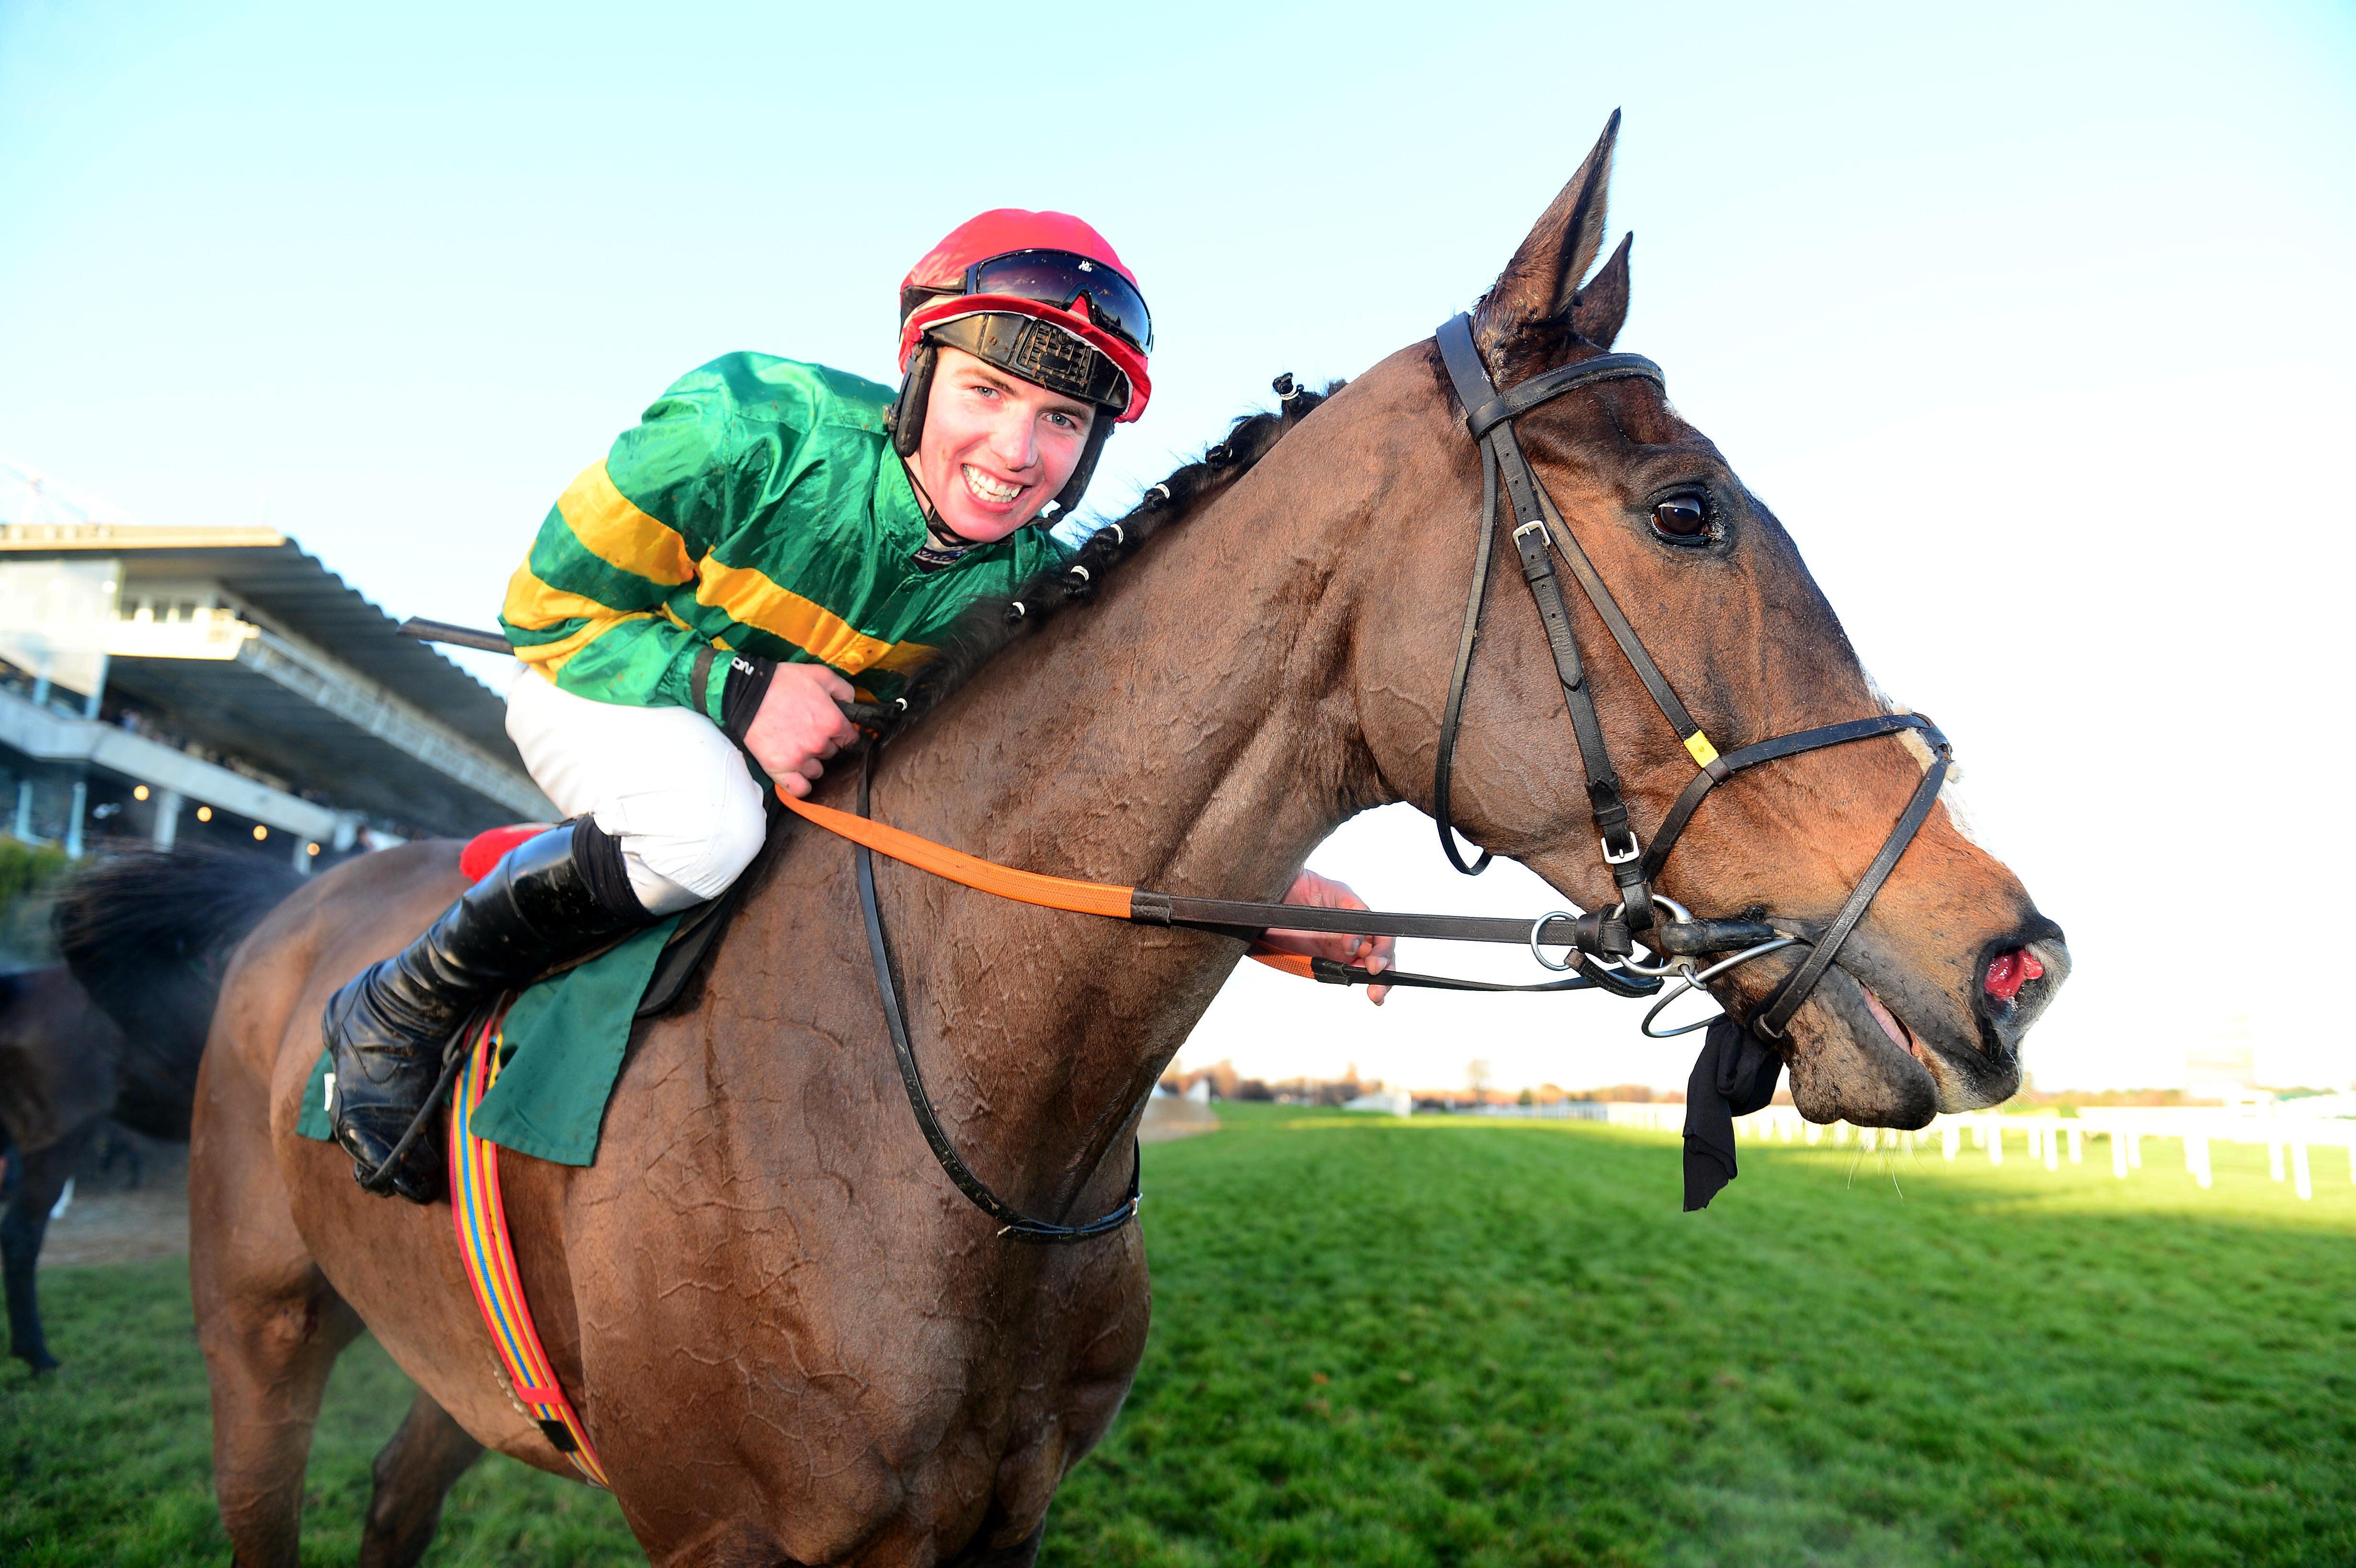 Ainbale Fly has run well in two previous renewals of the National